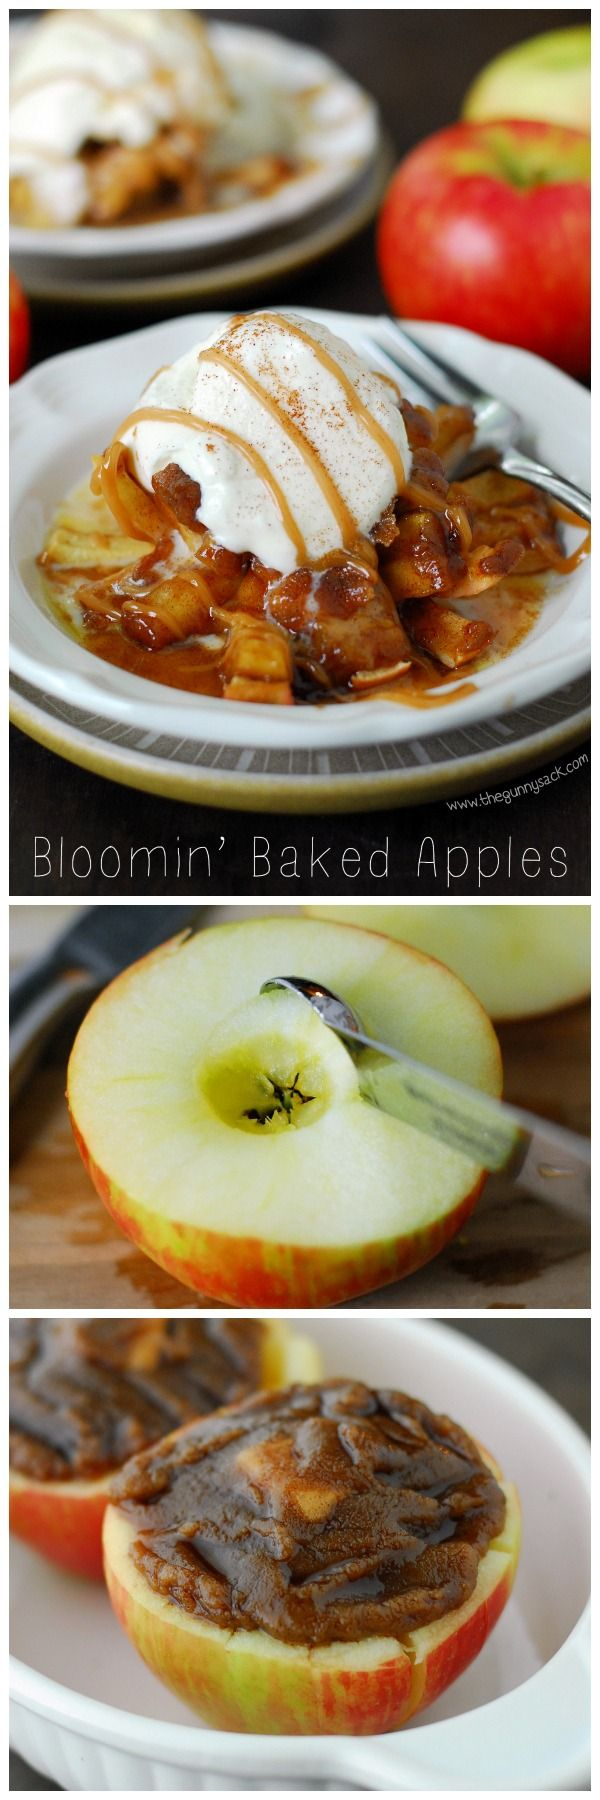 Bloomin' Baked Apples are a dessert version of the Bloomin' Onion that is perfect for fall! #WalmartProduce #client